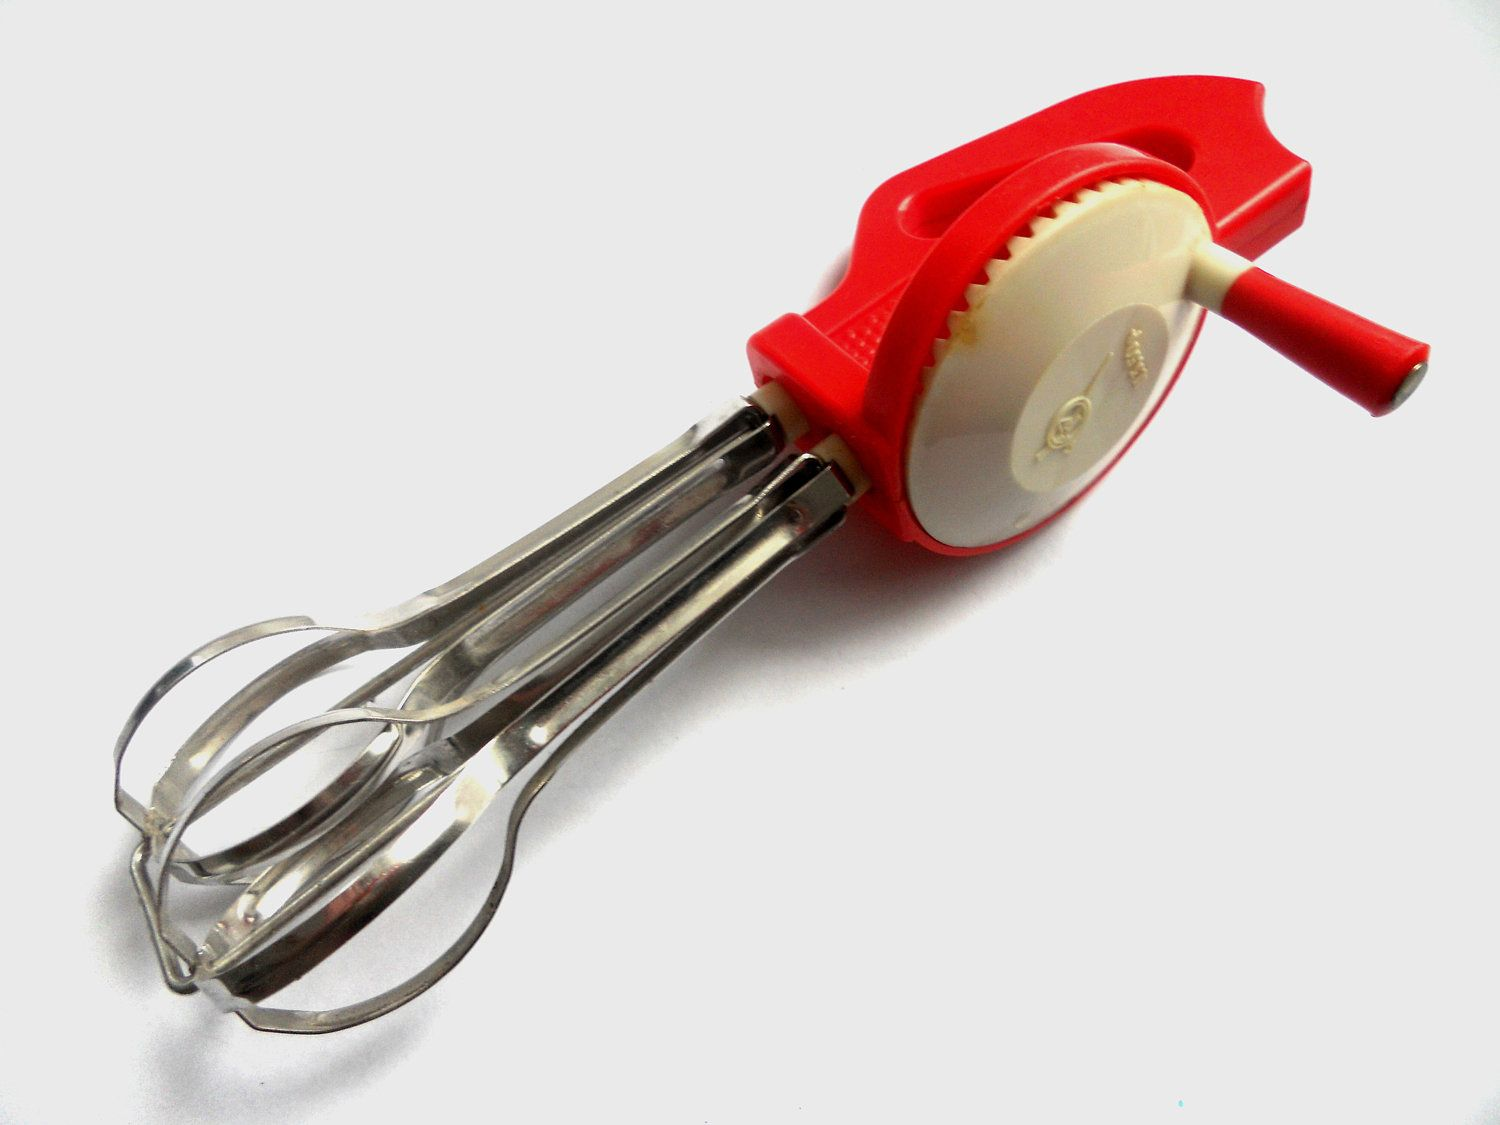 Soviet hand crank mixer egg beater 1980\'s Vintage red and white ...